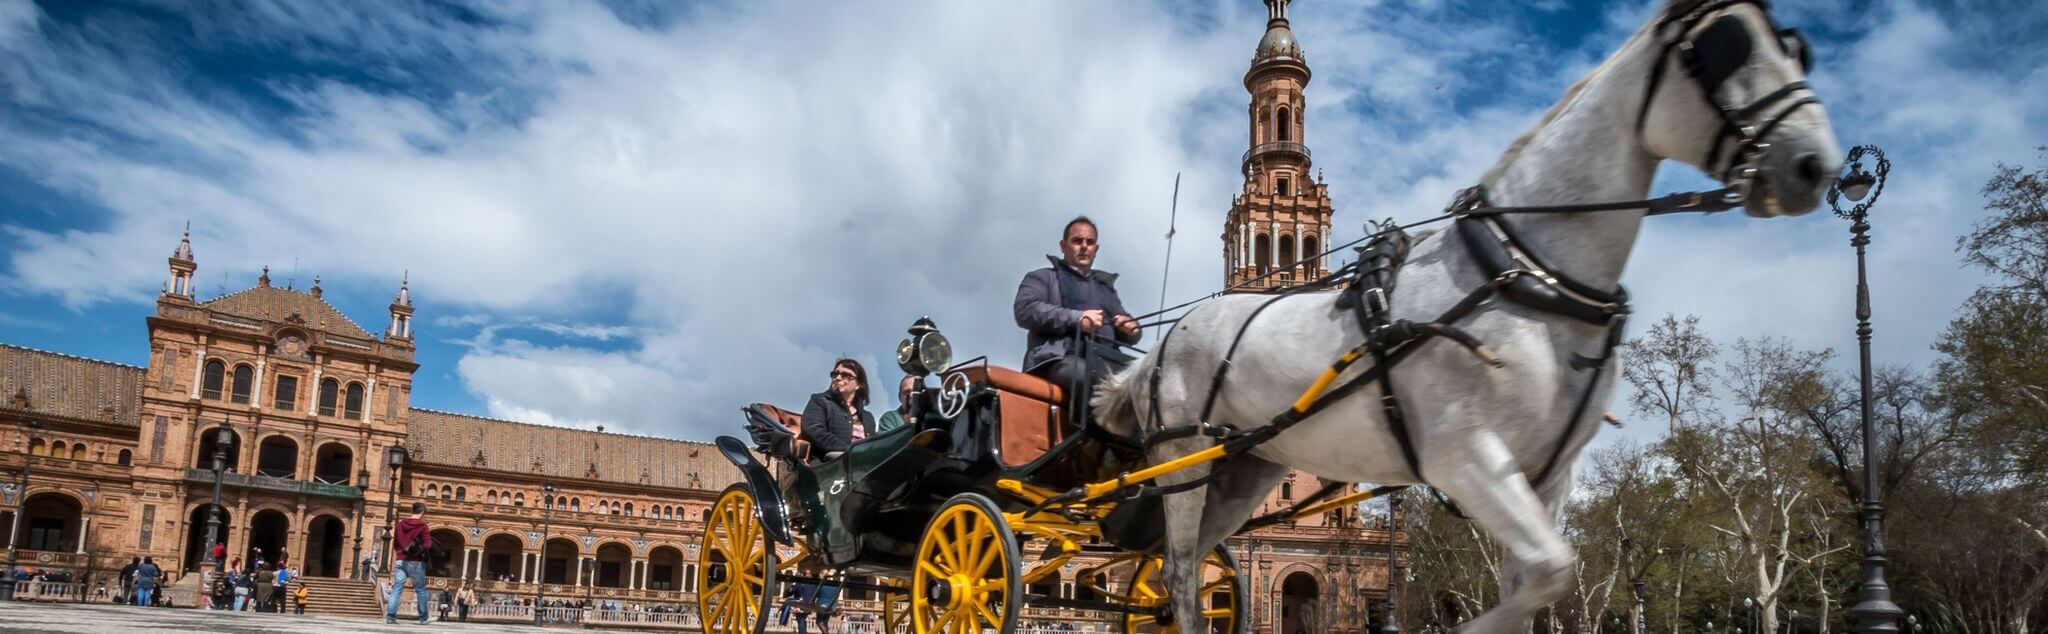 Carriage Riding in Spain